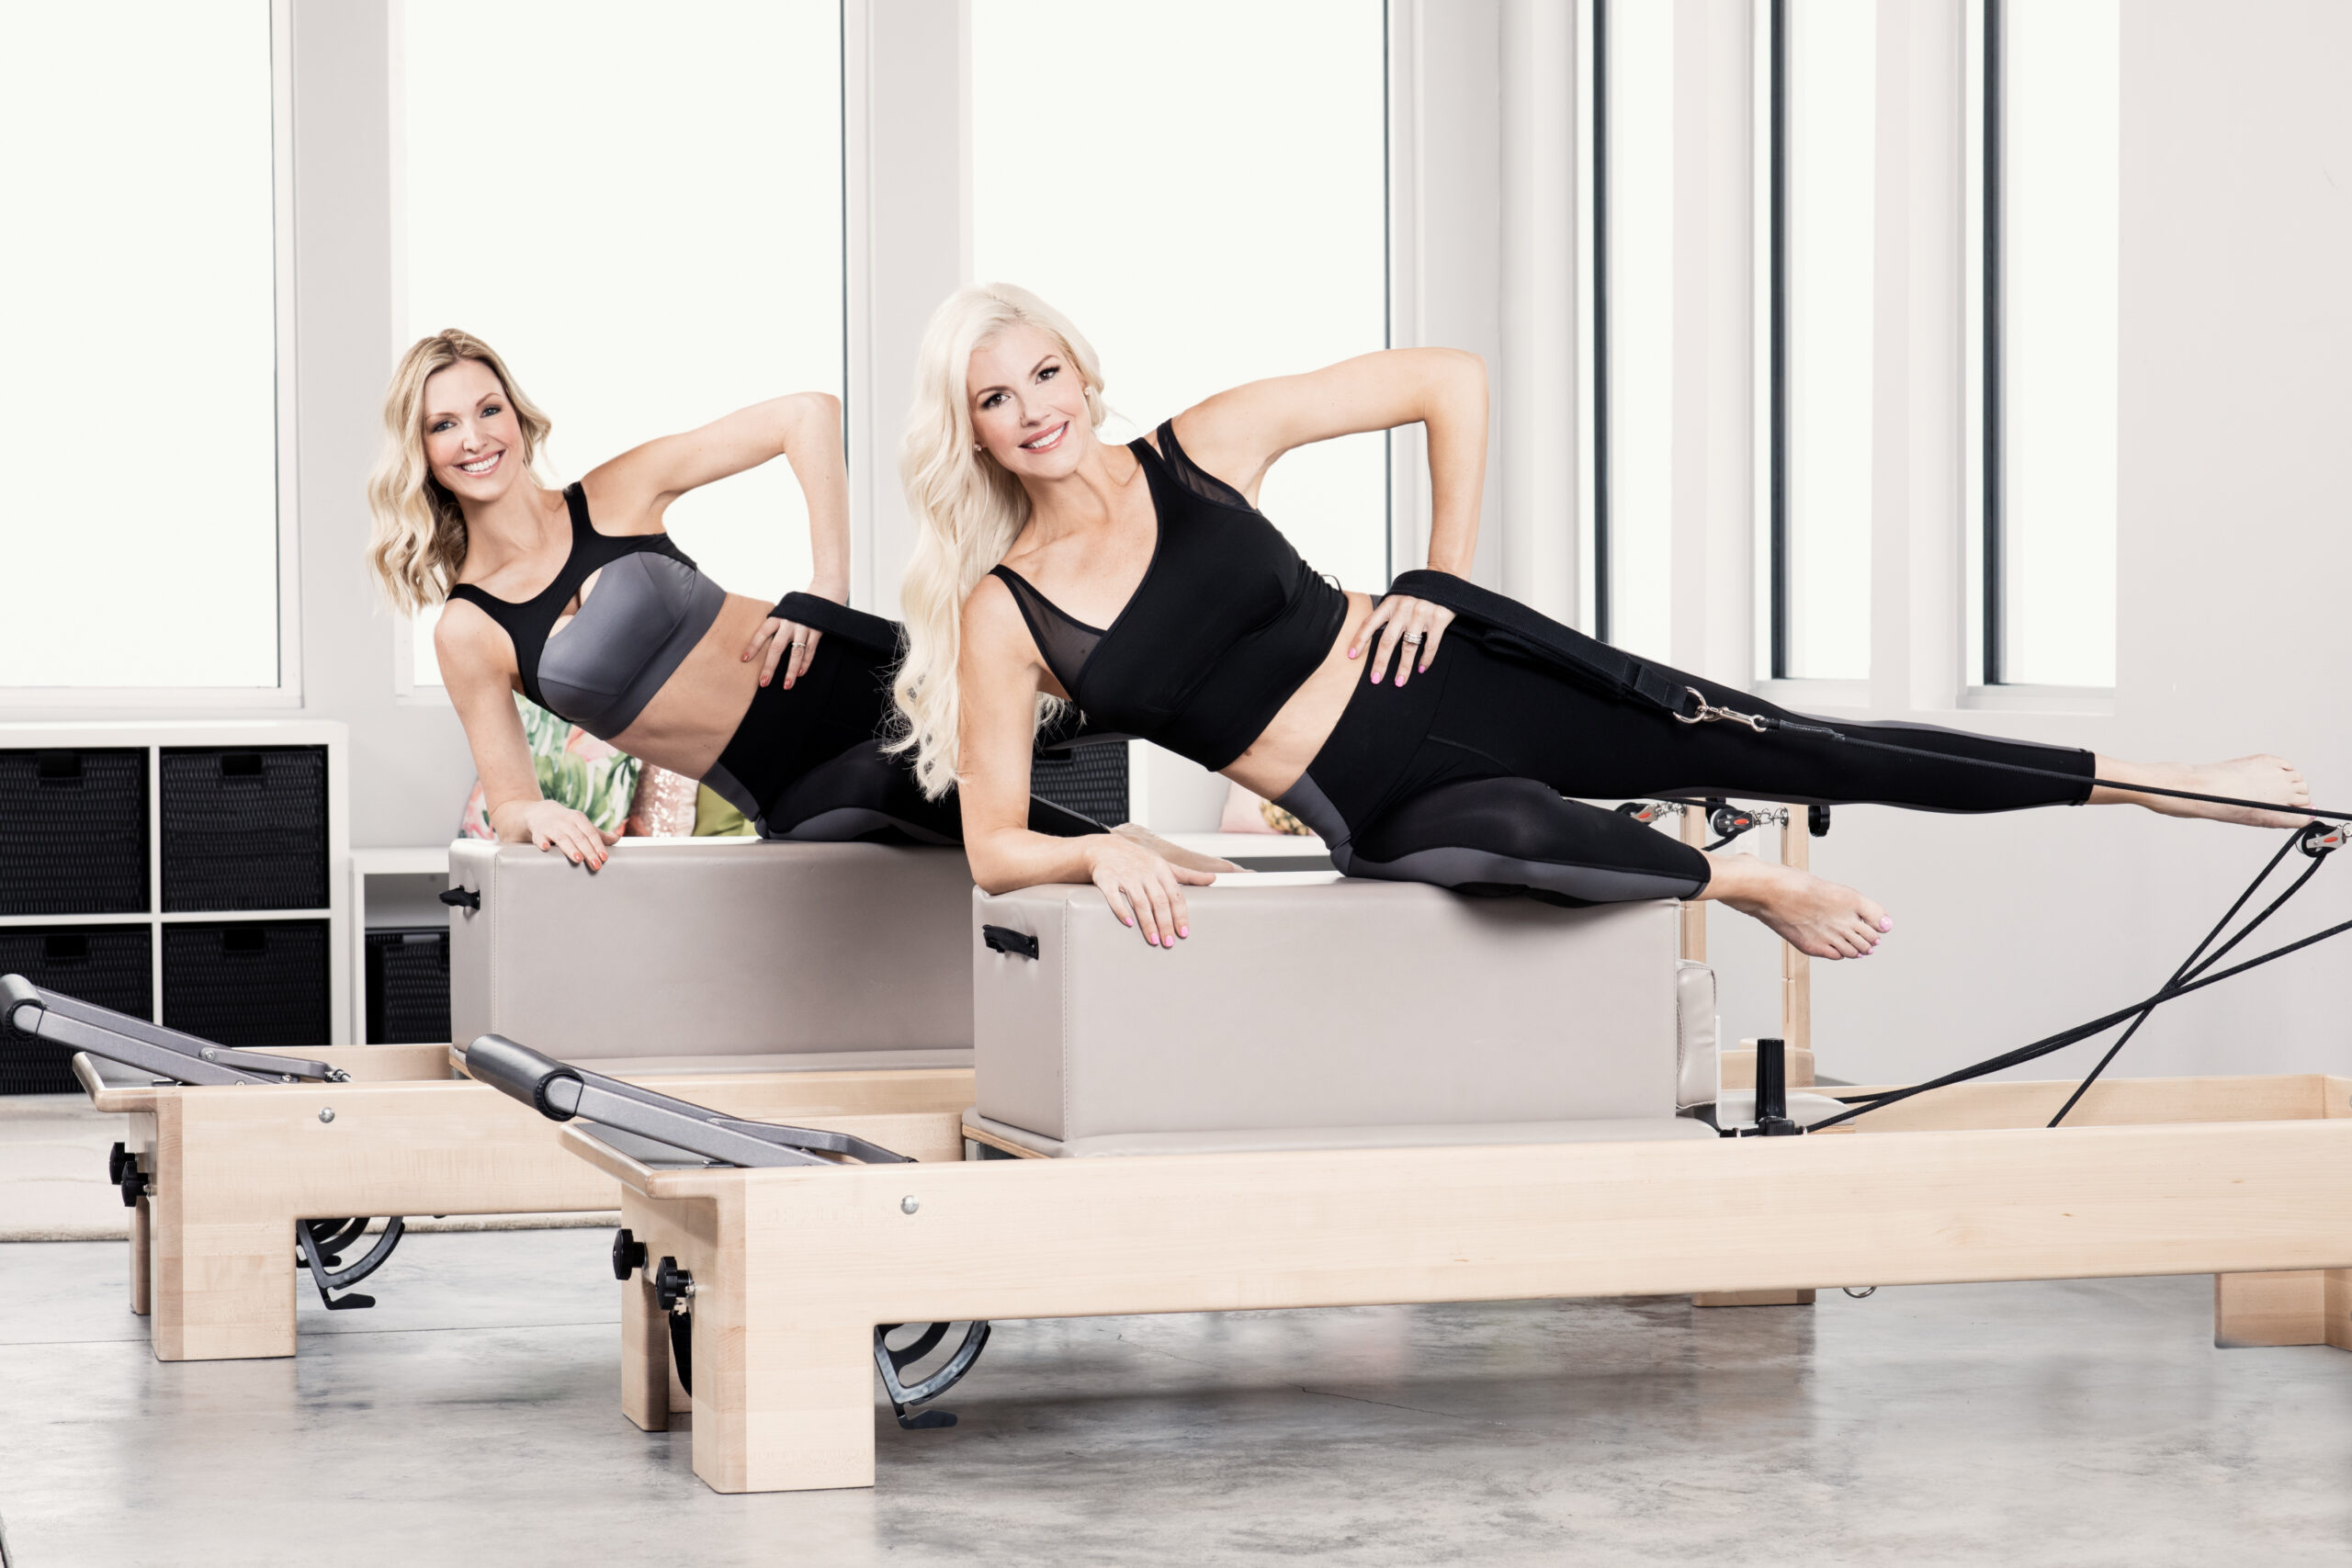 Tiffany & Korin In Michi Pilates Wear